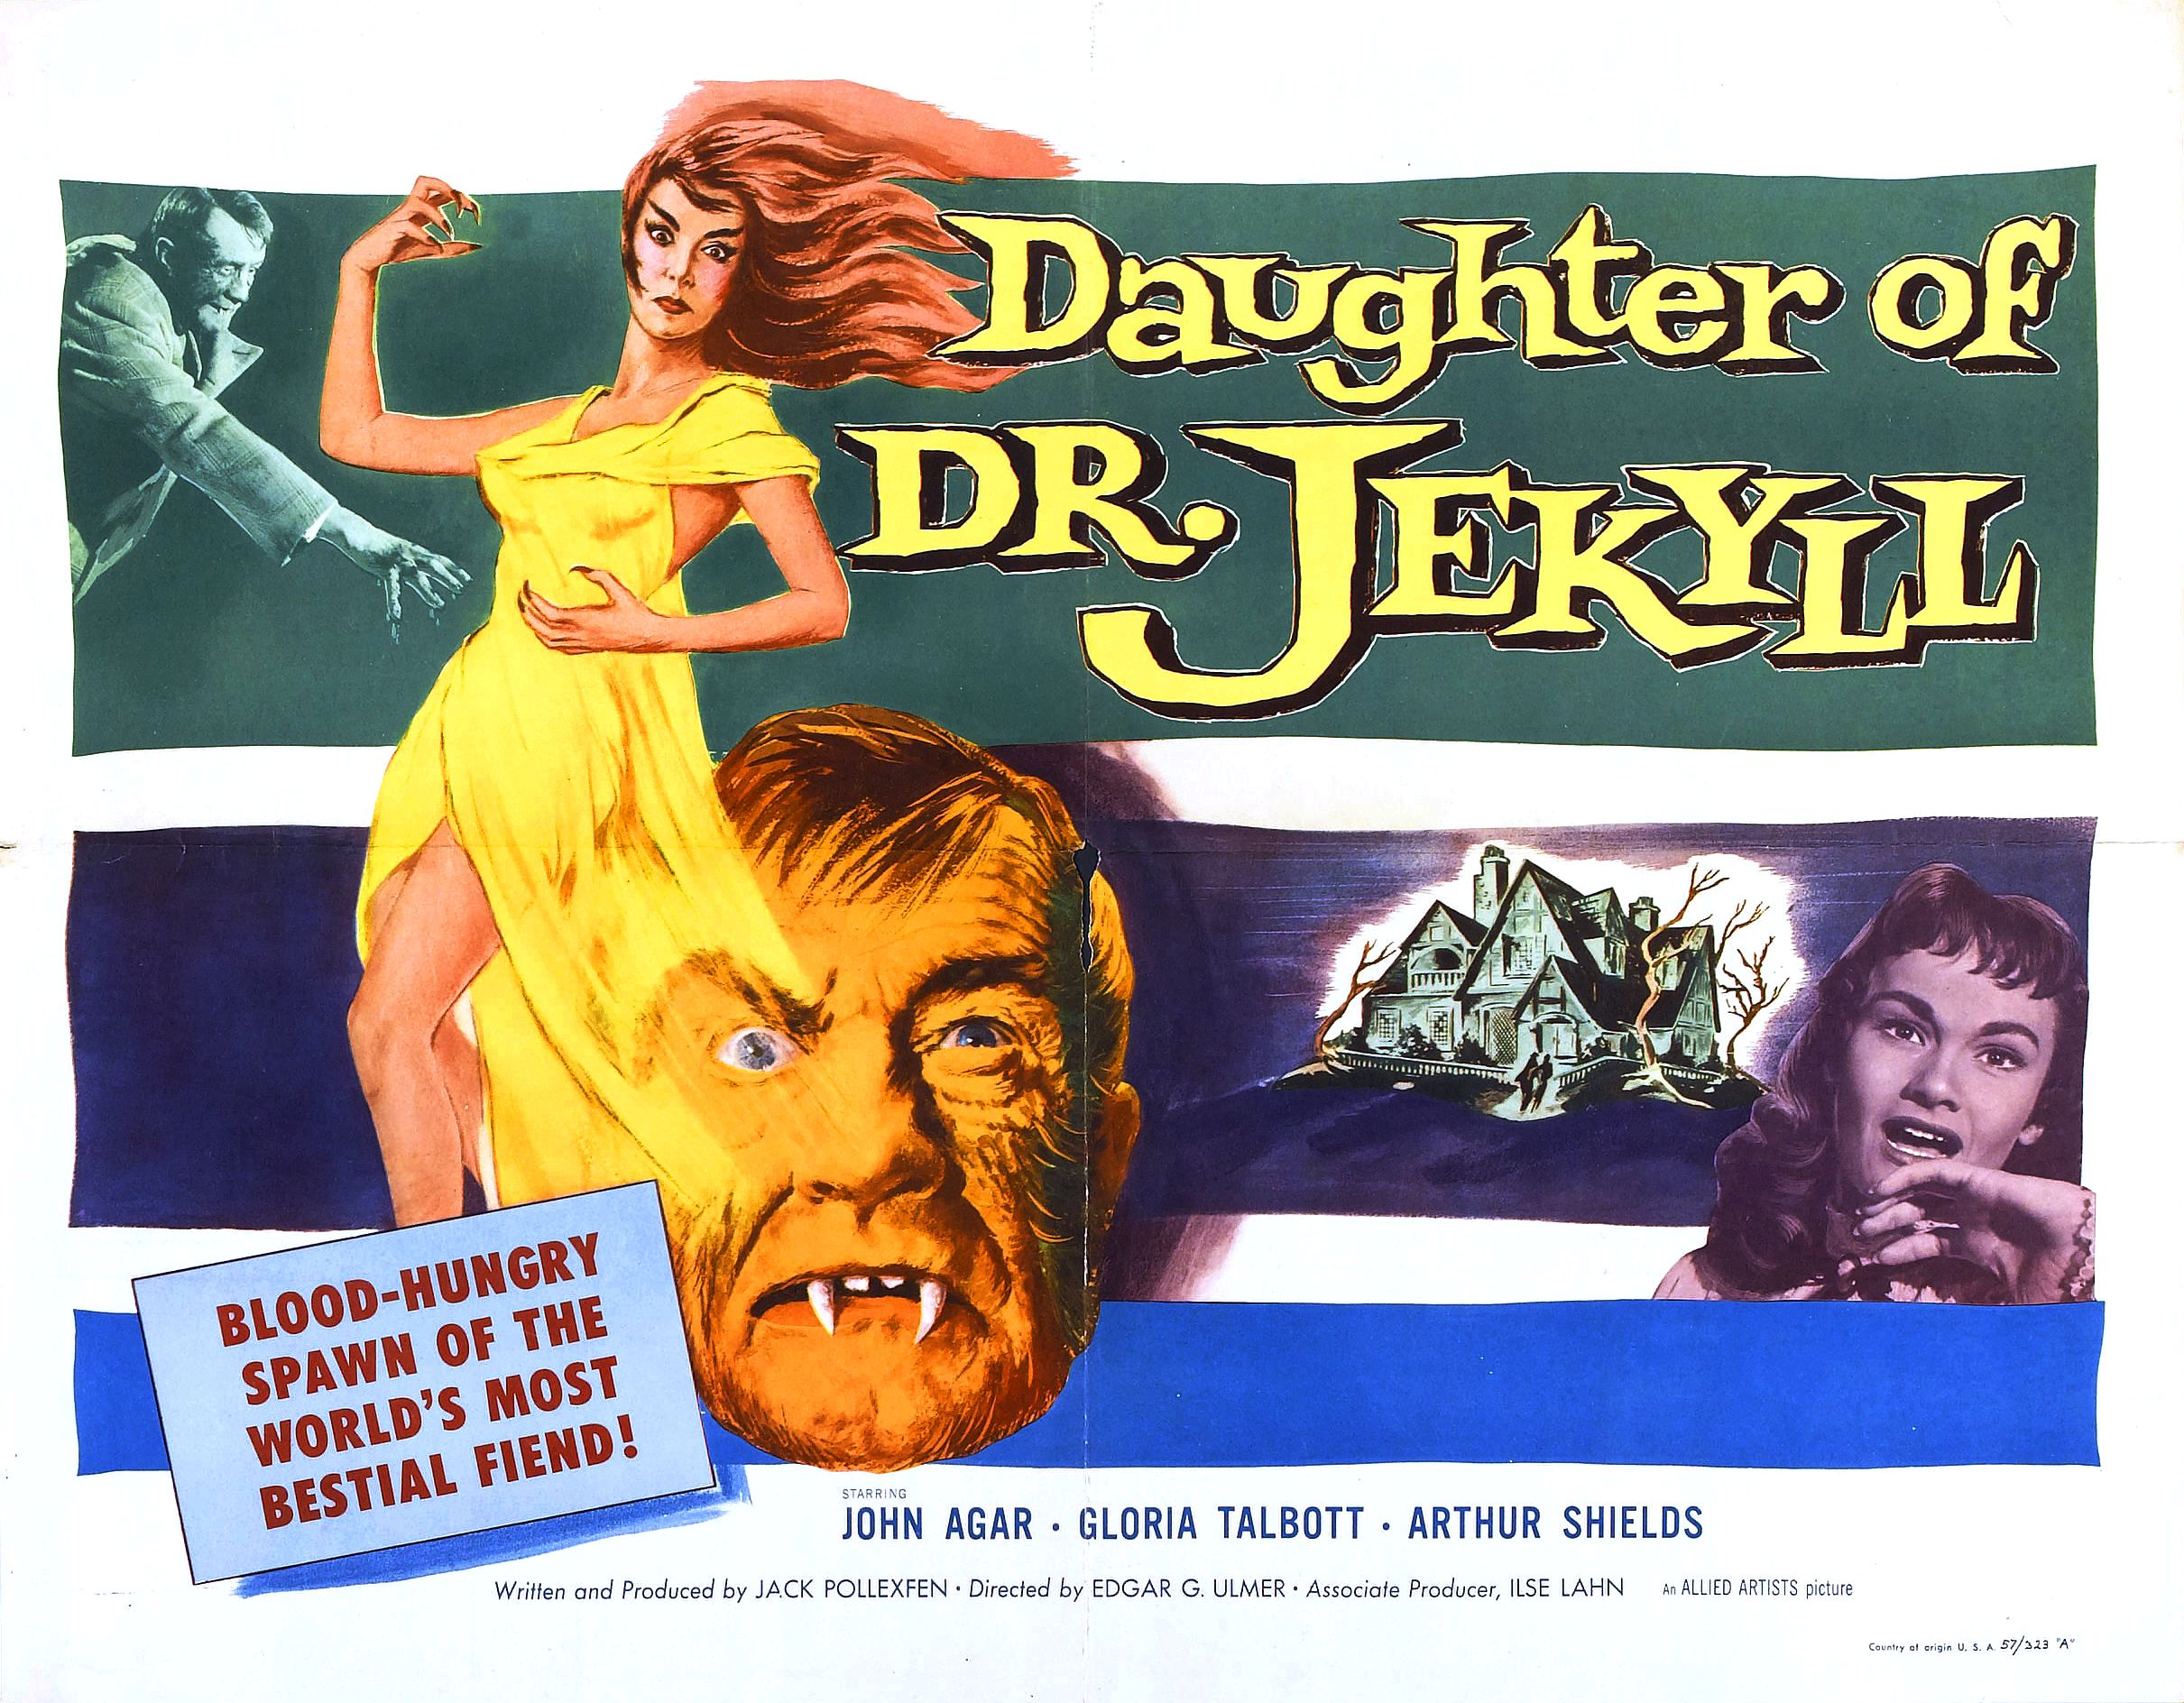 the addiction of dr jekyll Drug addiction homicide  mr utterson is a london lawyer who is a friend of dr jekyll jekyll gave up his regular practice to experiment with non-traditional .